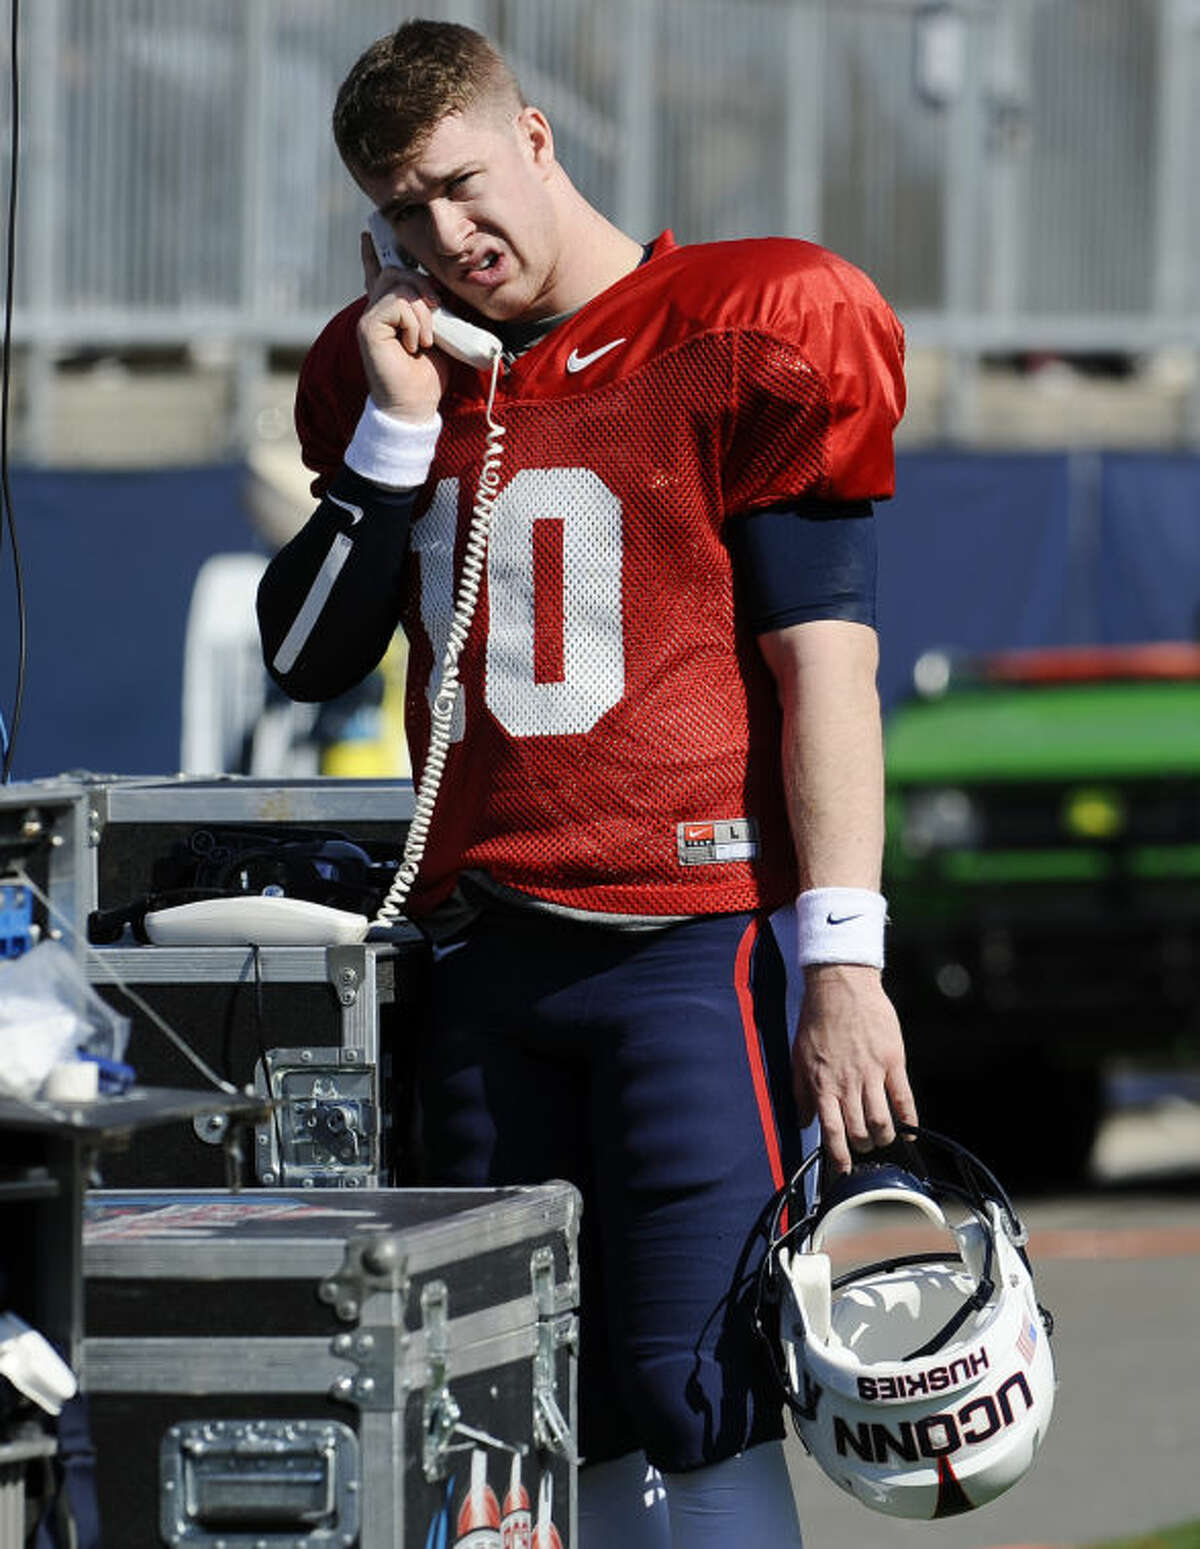 Connecticut quarterback Chandler Whitmer talks on the phone during the first half of UConn's Blue-White spring NCAA college football game at Rentschler Field, Saturday, April 12, 2014, in East Hartford, Conn. (AP Photo/Jessica Hill)